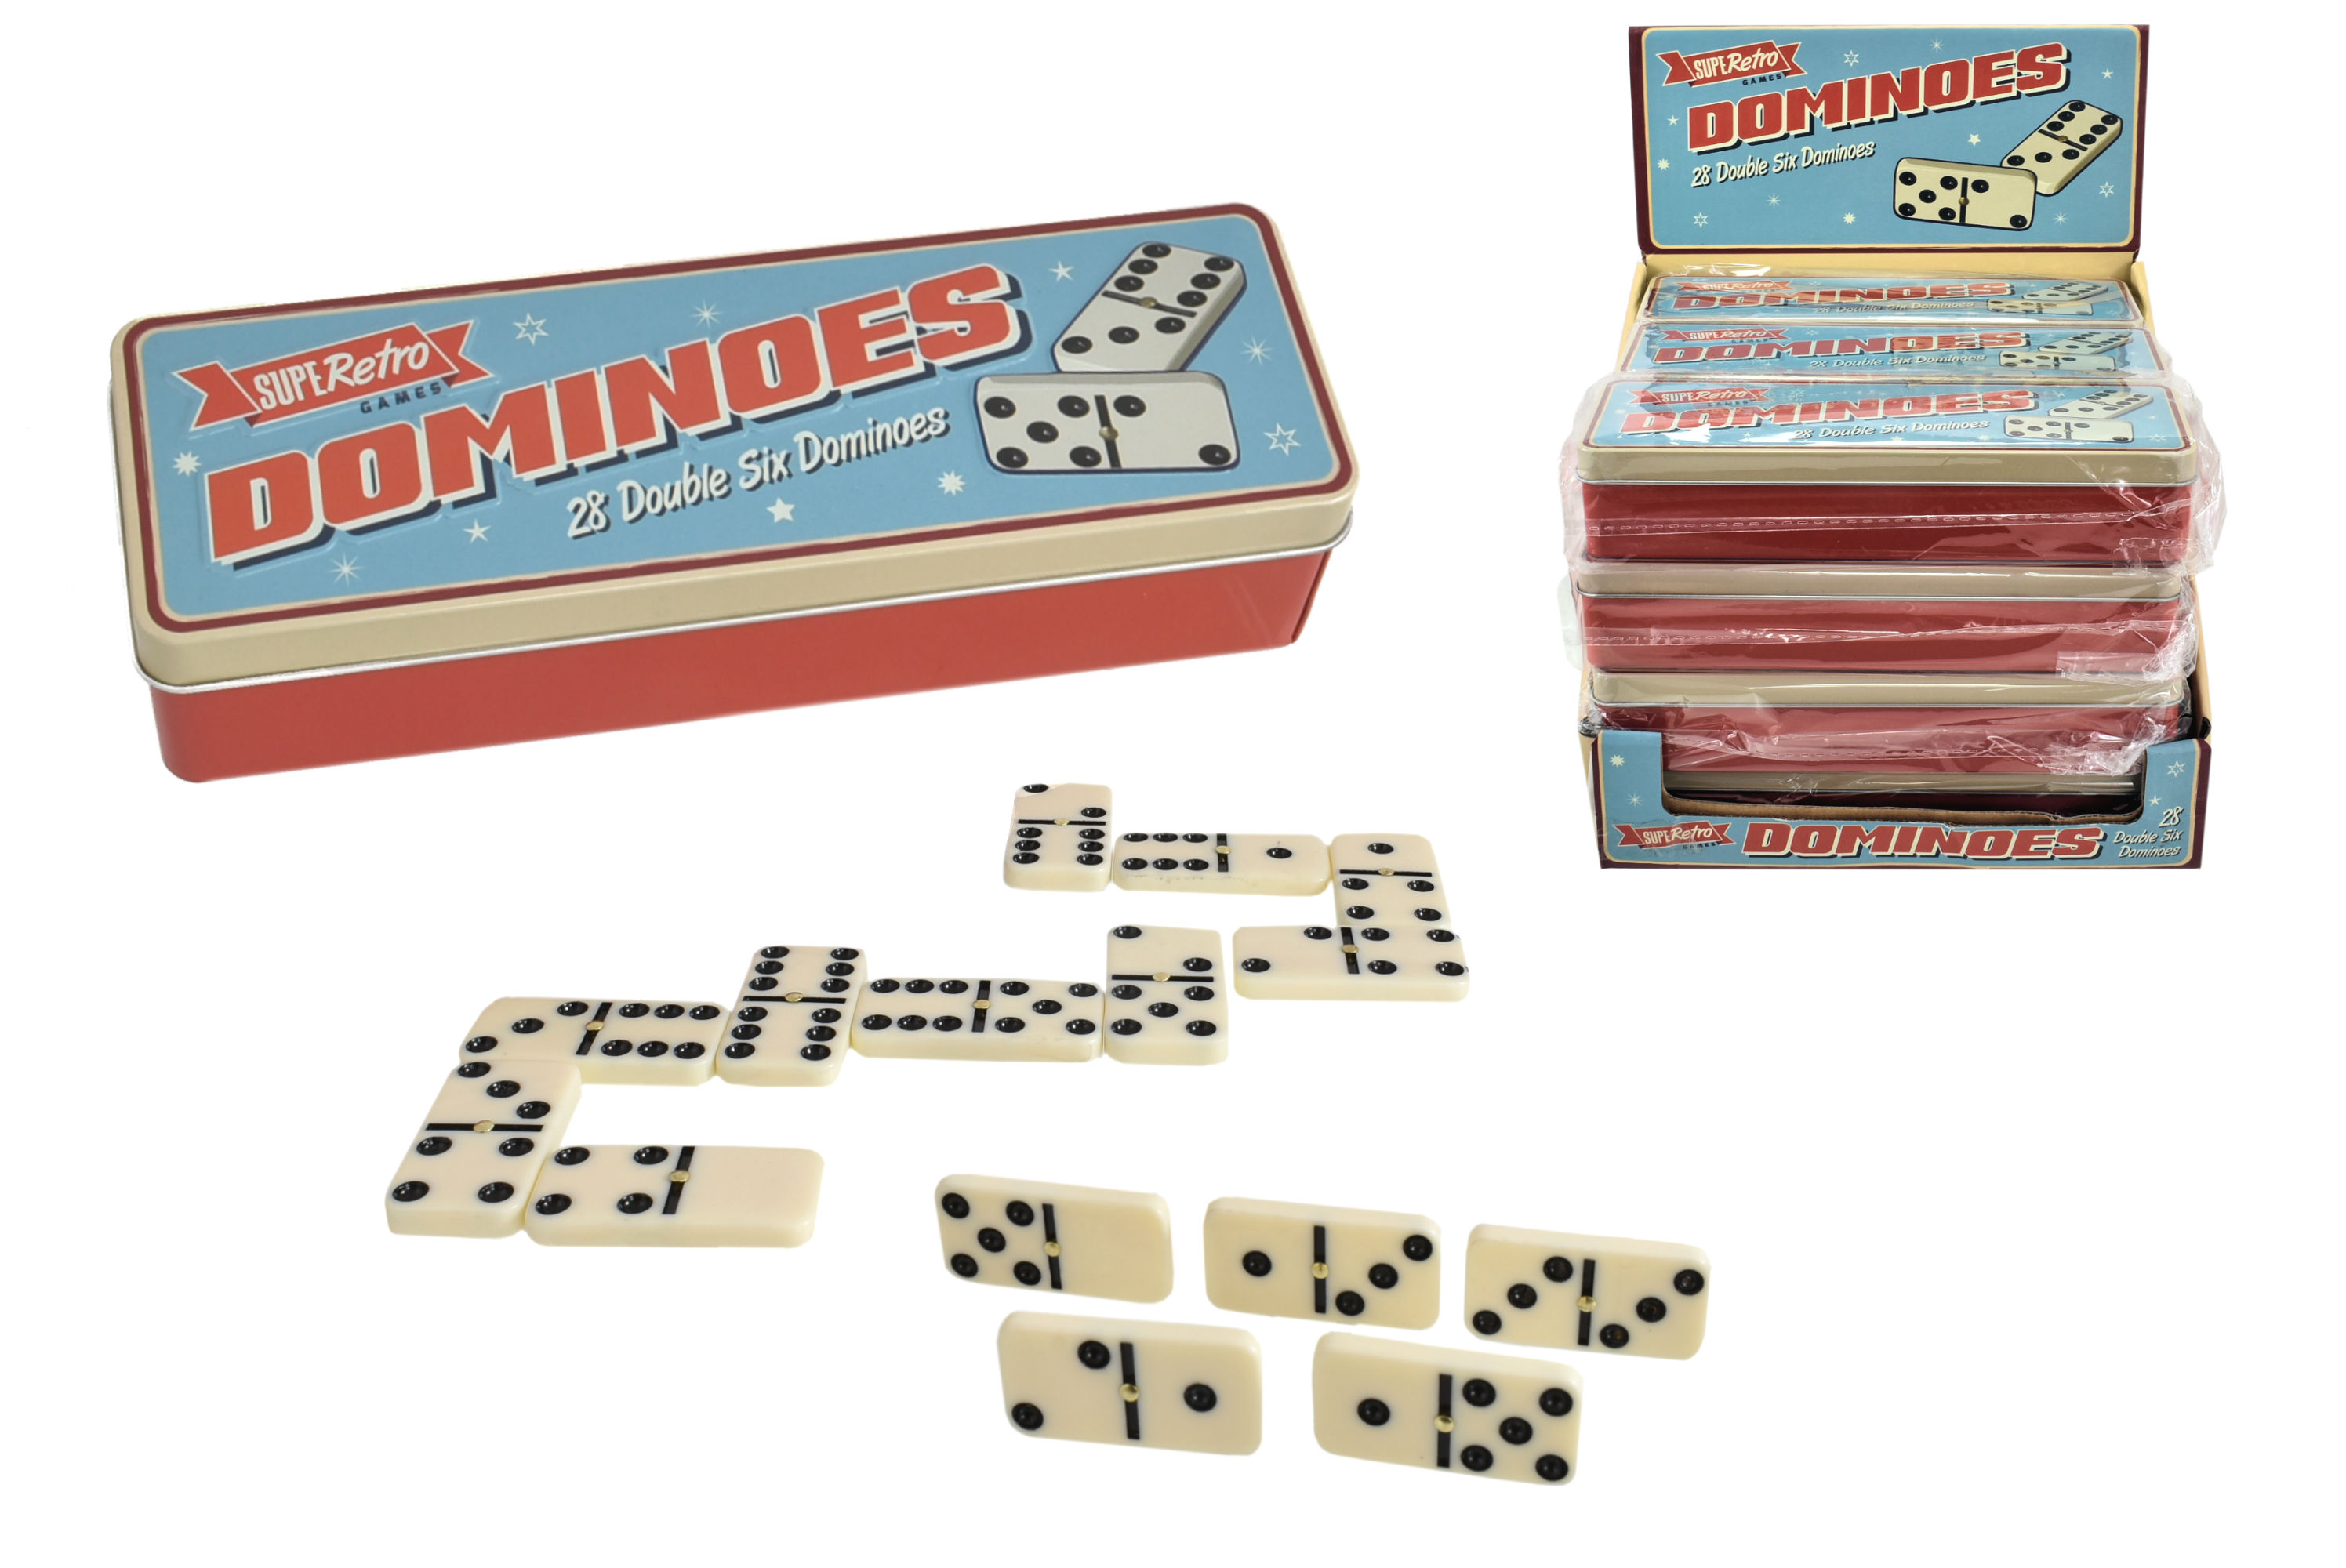 28pc Dominoes In Tin Box & Display Box